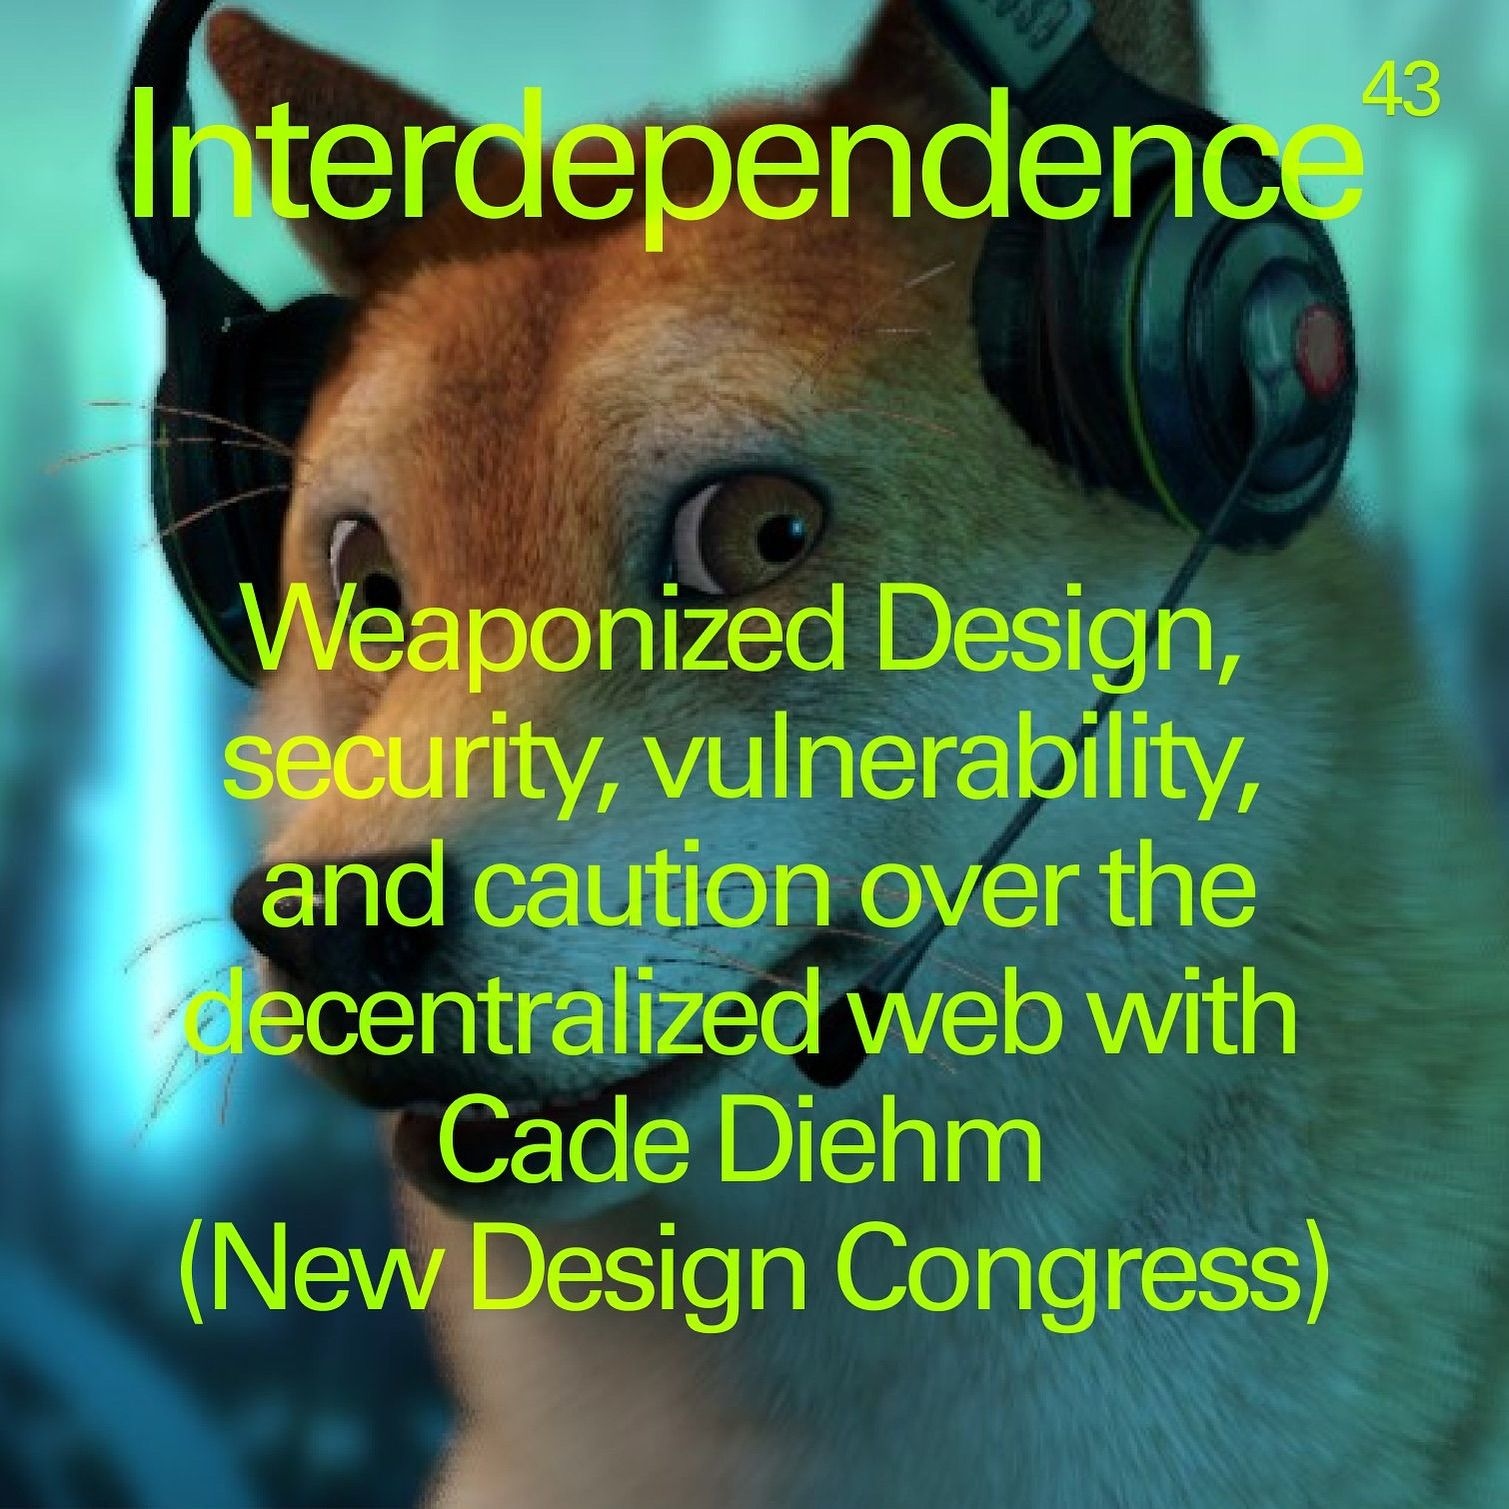 Weaponized Design, security, vulnerability, and caution over the decentralized web with Cade Diehm (New Design Congress)